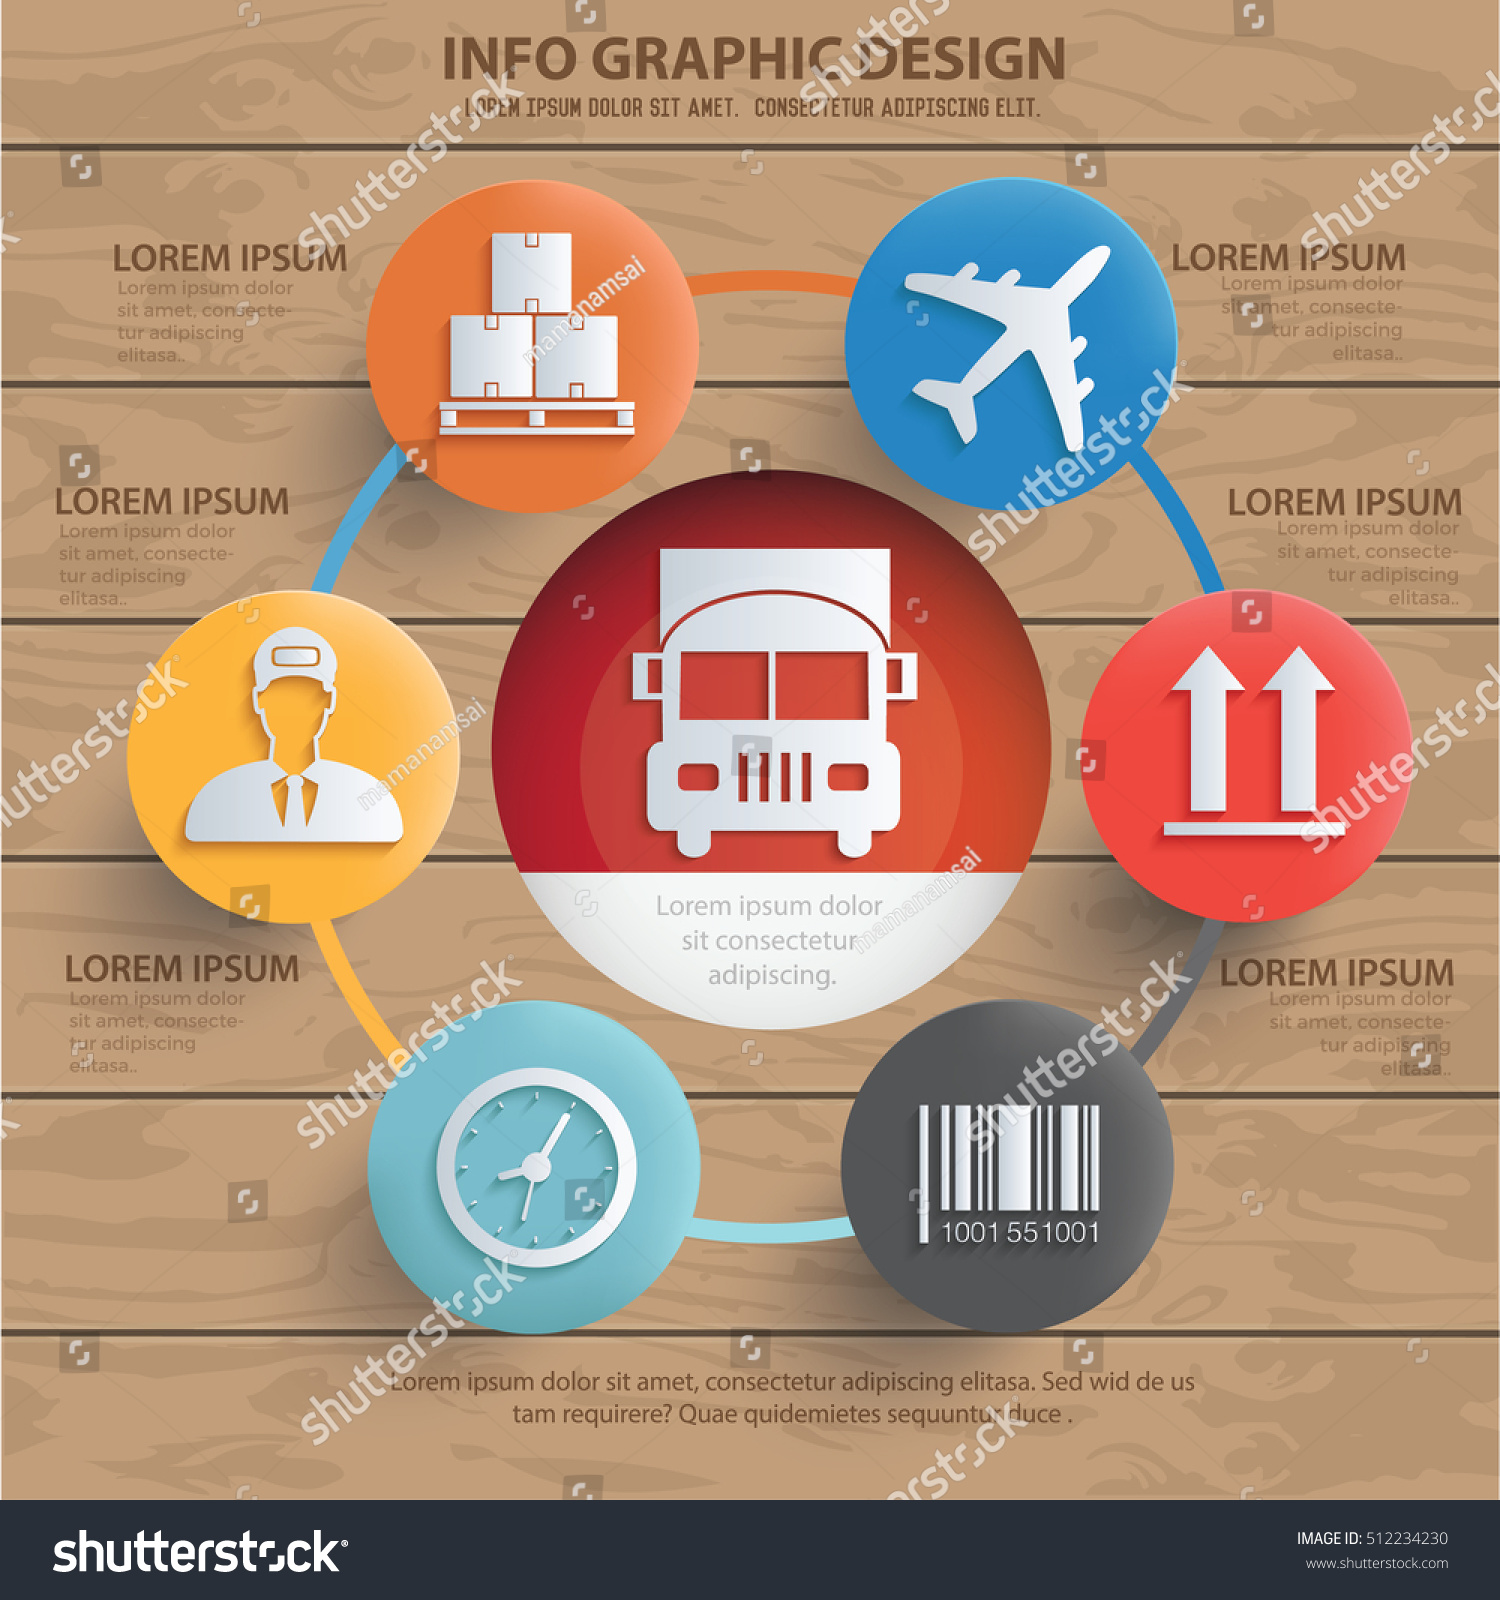 how can design for logistic concepts Design for logistics is a series of concepts in the field of supply chain management involving product and design approaches that help to control logistics costs and.